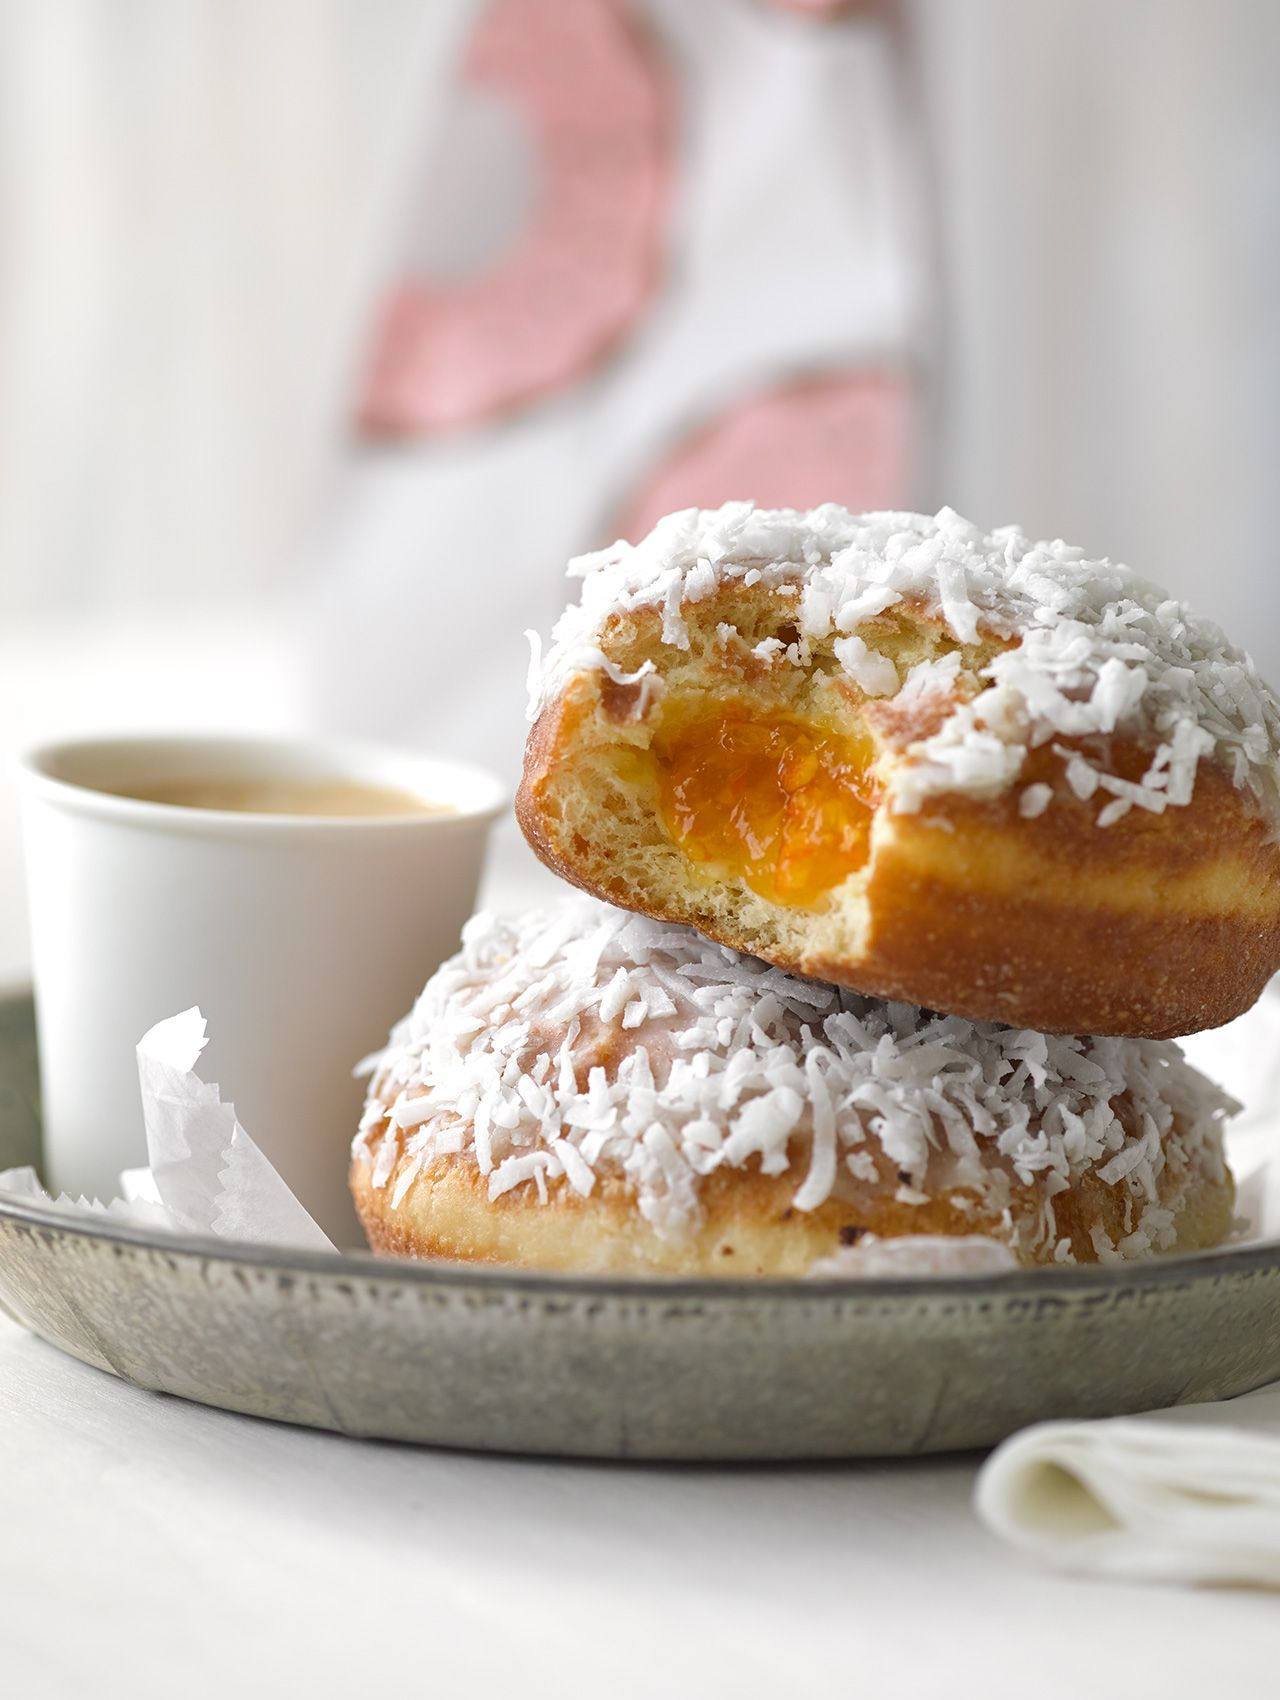 Marmalade Donuts Coconut Flakes